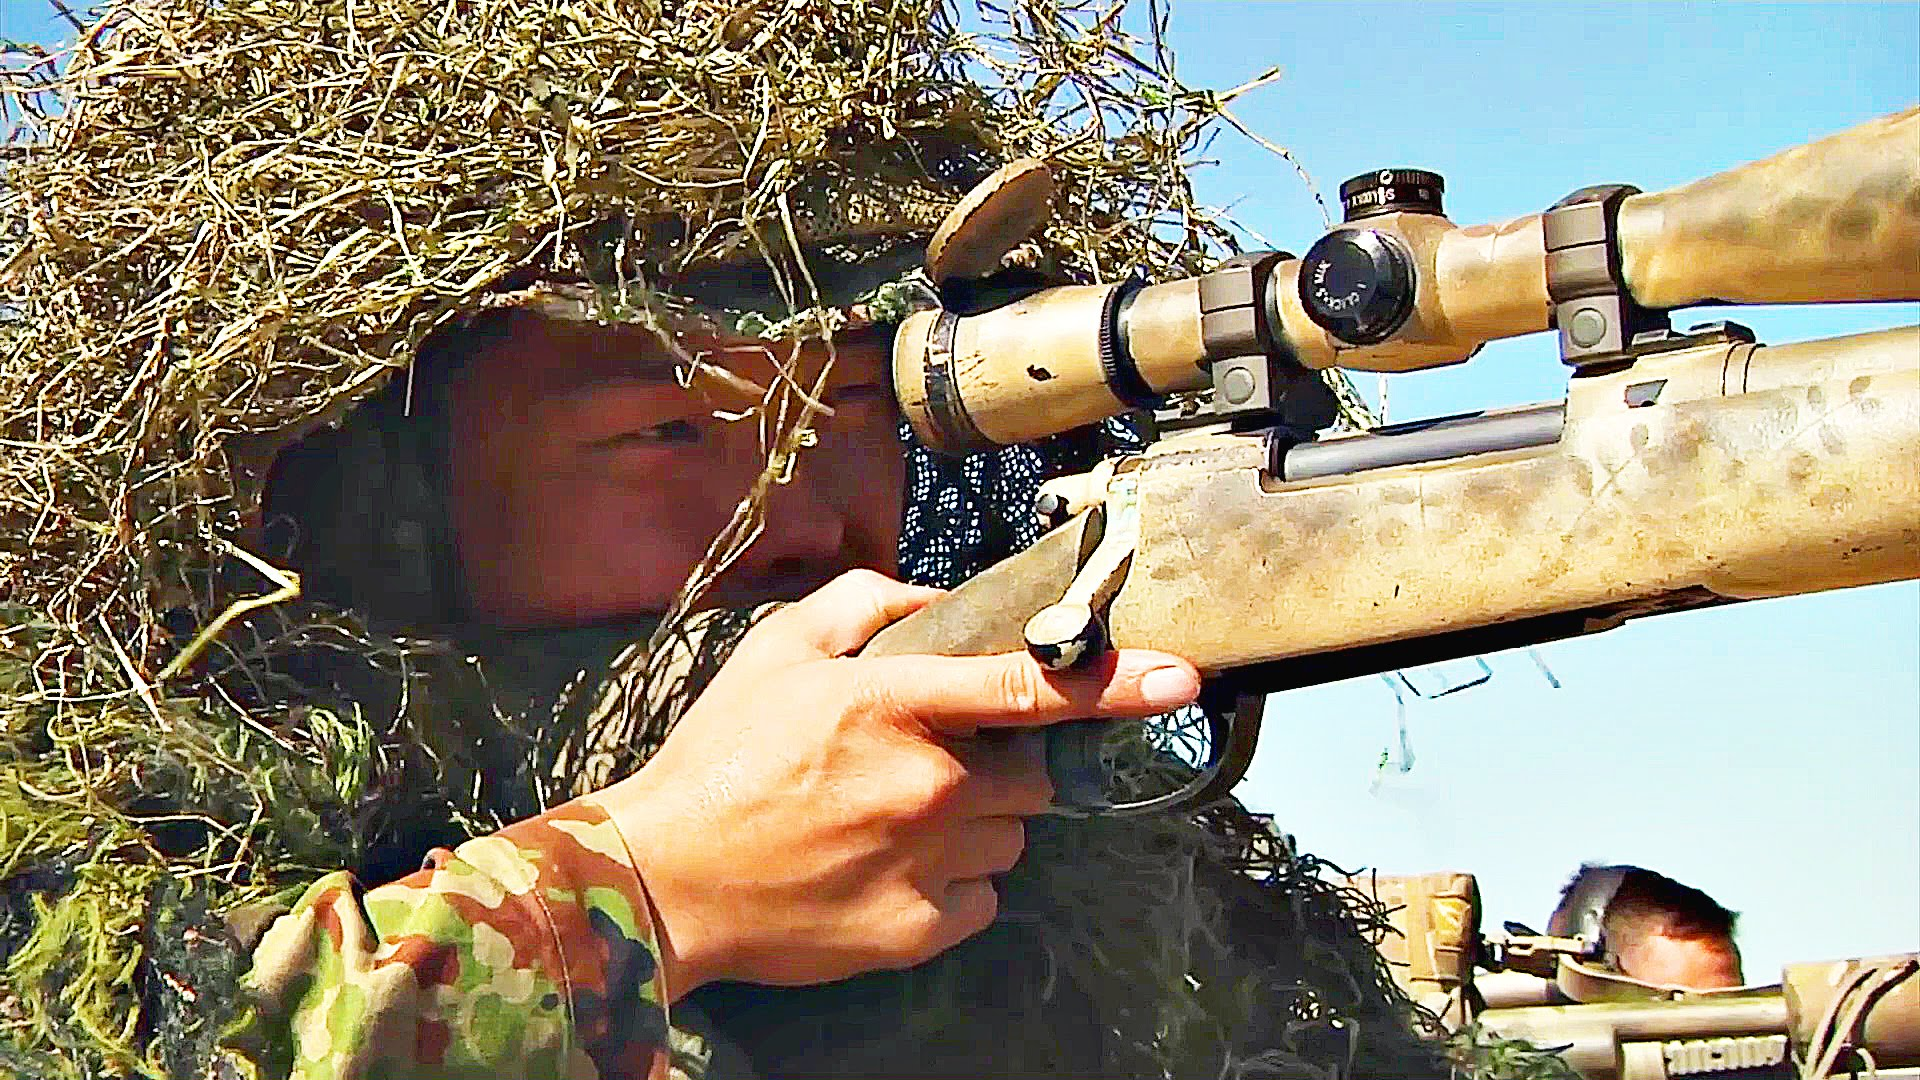 Japan Self-Defense Forces Sniper Rifle Range – M24 Sniper Weapon System